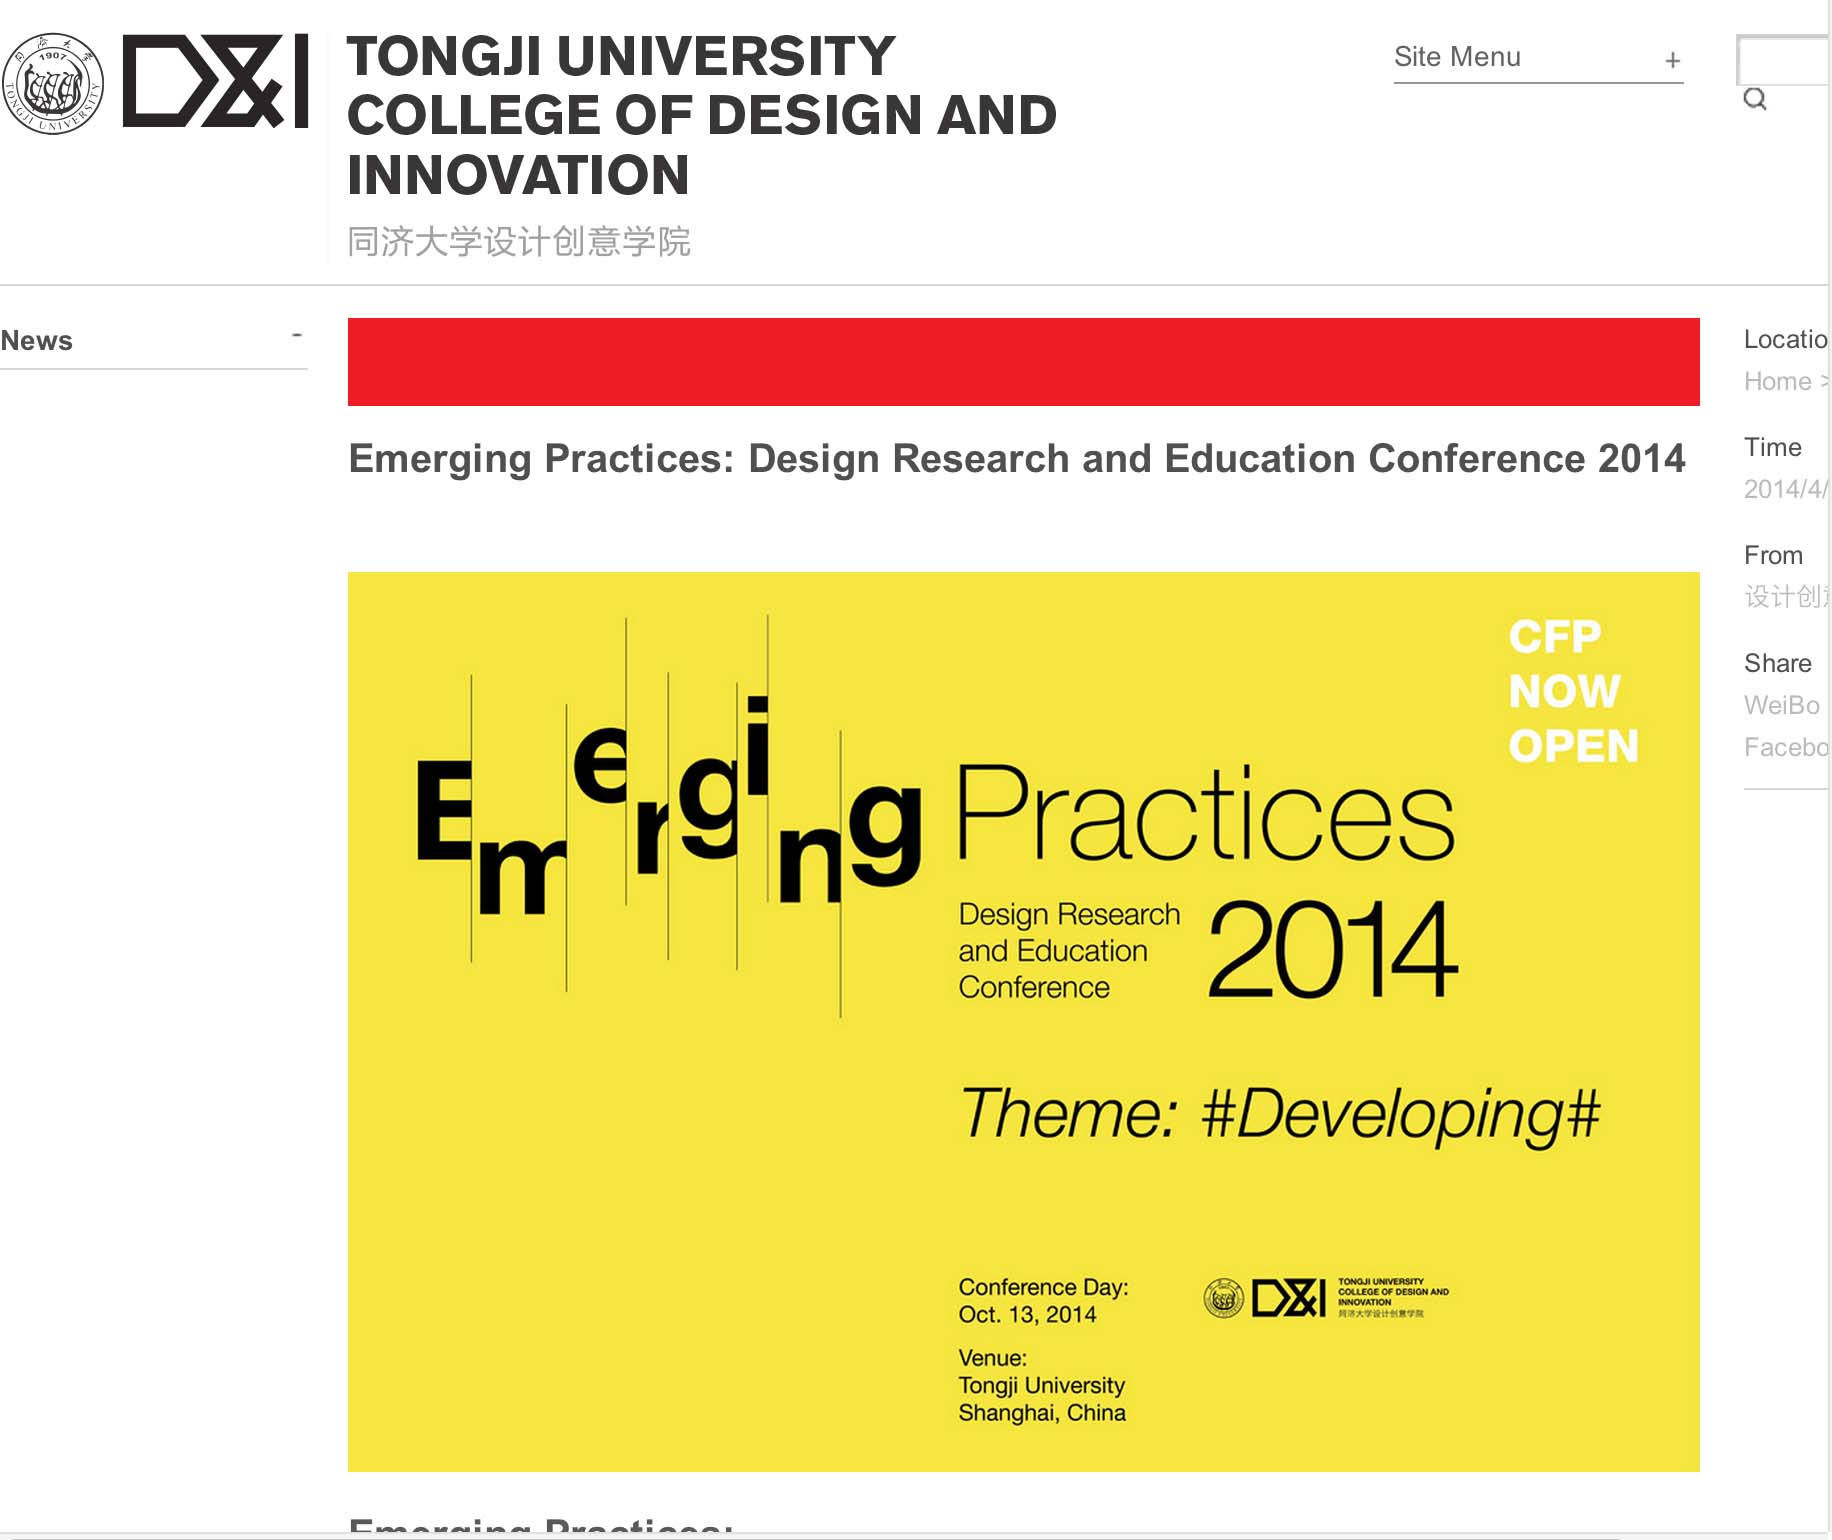 EMerging Practices Conf.jpg